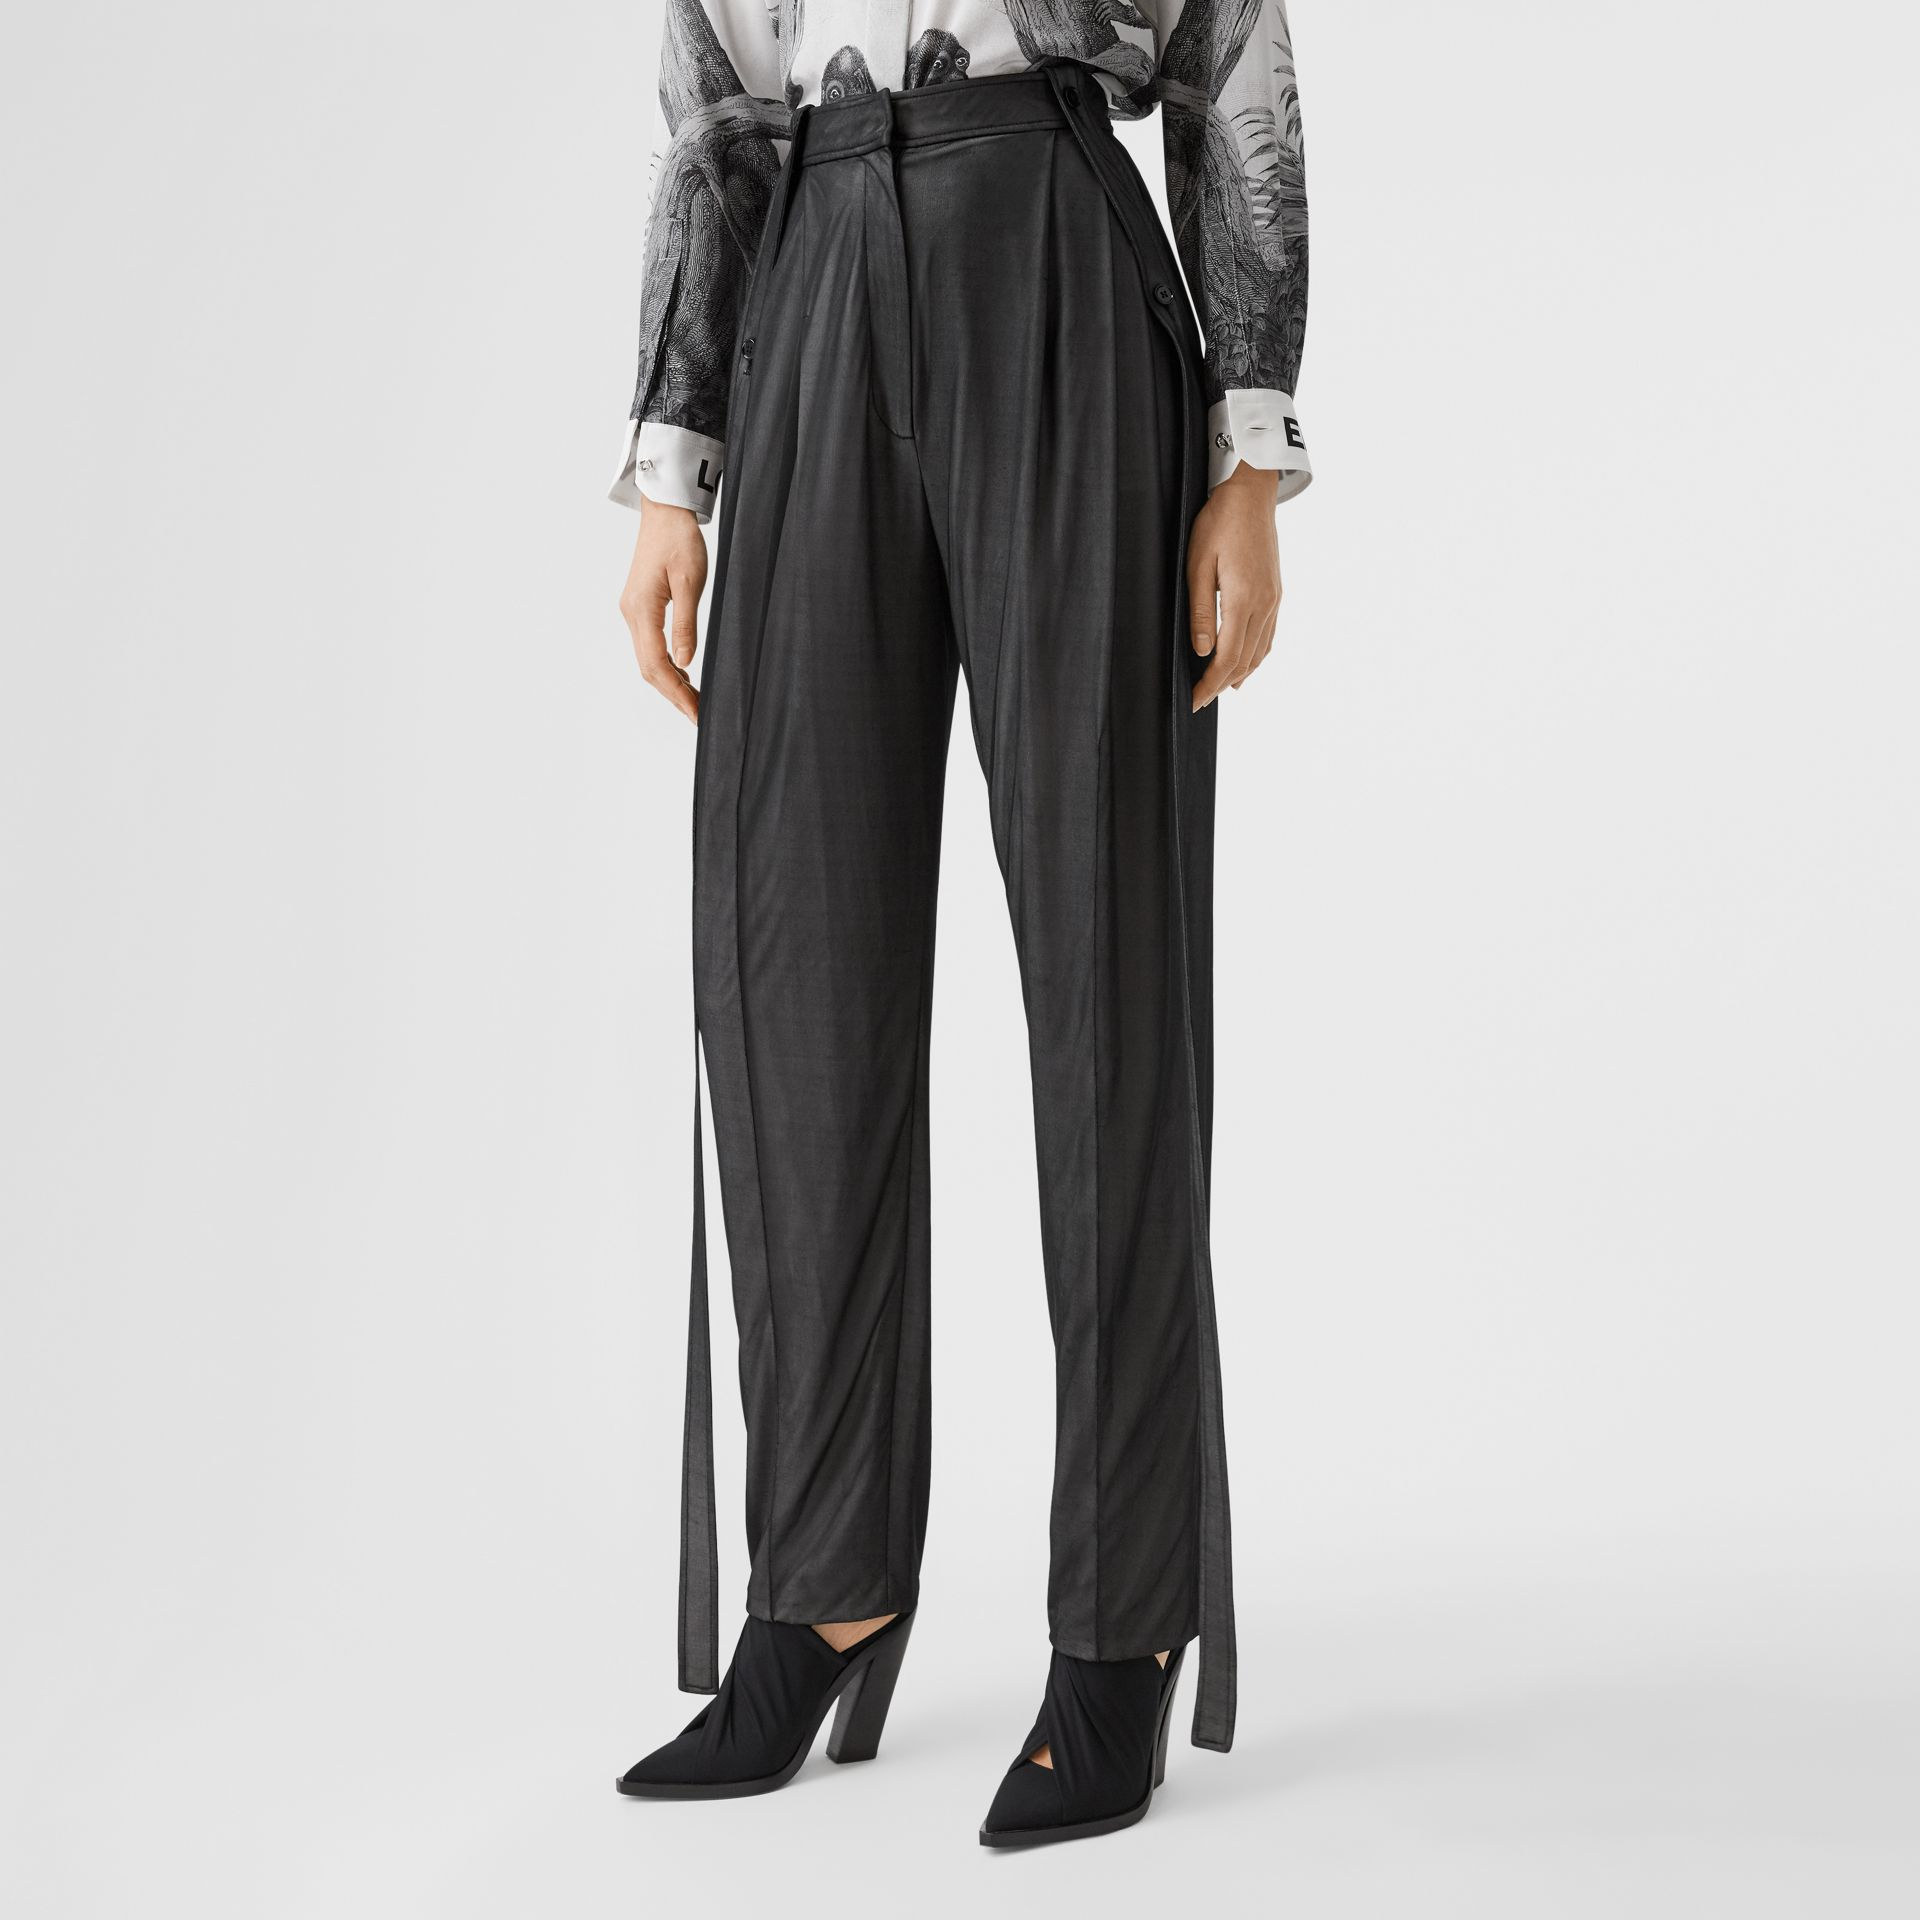 Strap Detail Chiffon and Jersey Tailored Trousers in Black - Women | Burberry - gallery image 4